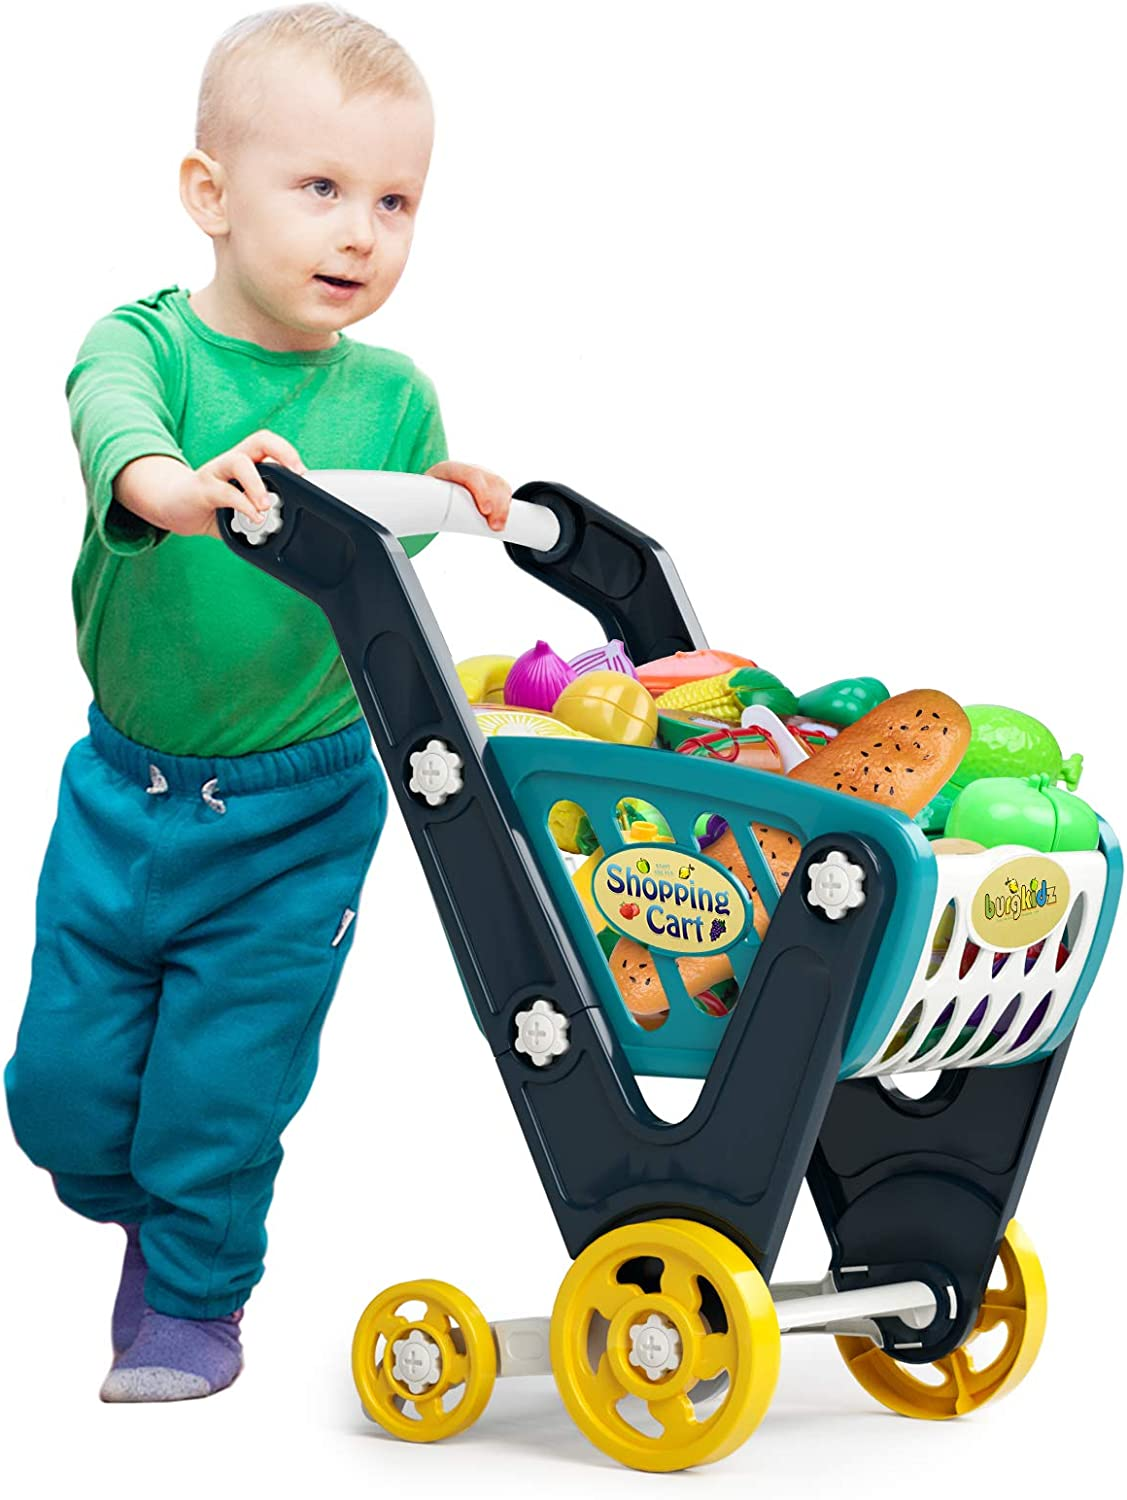 burgkidz Shopping cart for Kids,Toy Shopping Cart for Toddlers, Supermarket Playset Include 73 Pieces Pretend Play Food and Accessories,Grocery Cart for Kids Age 3+